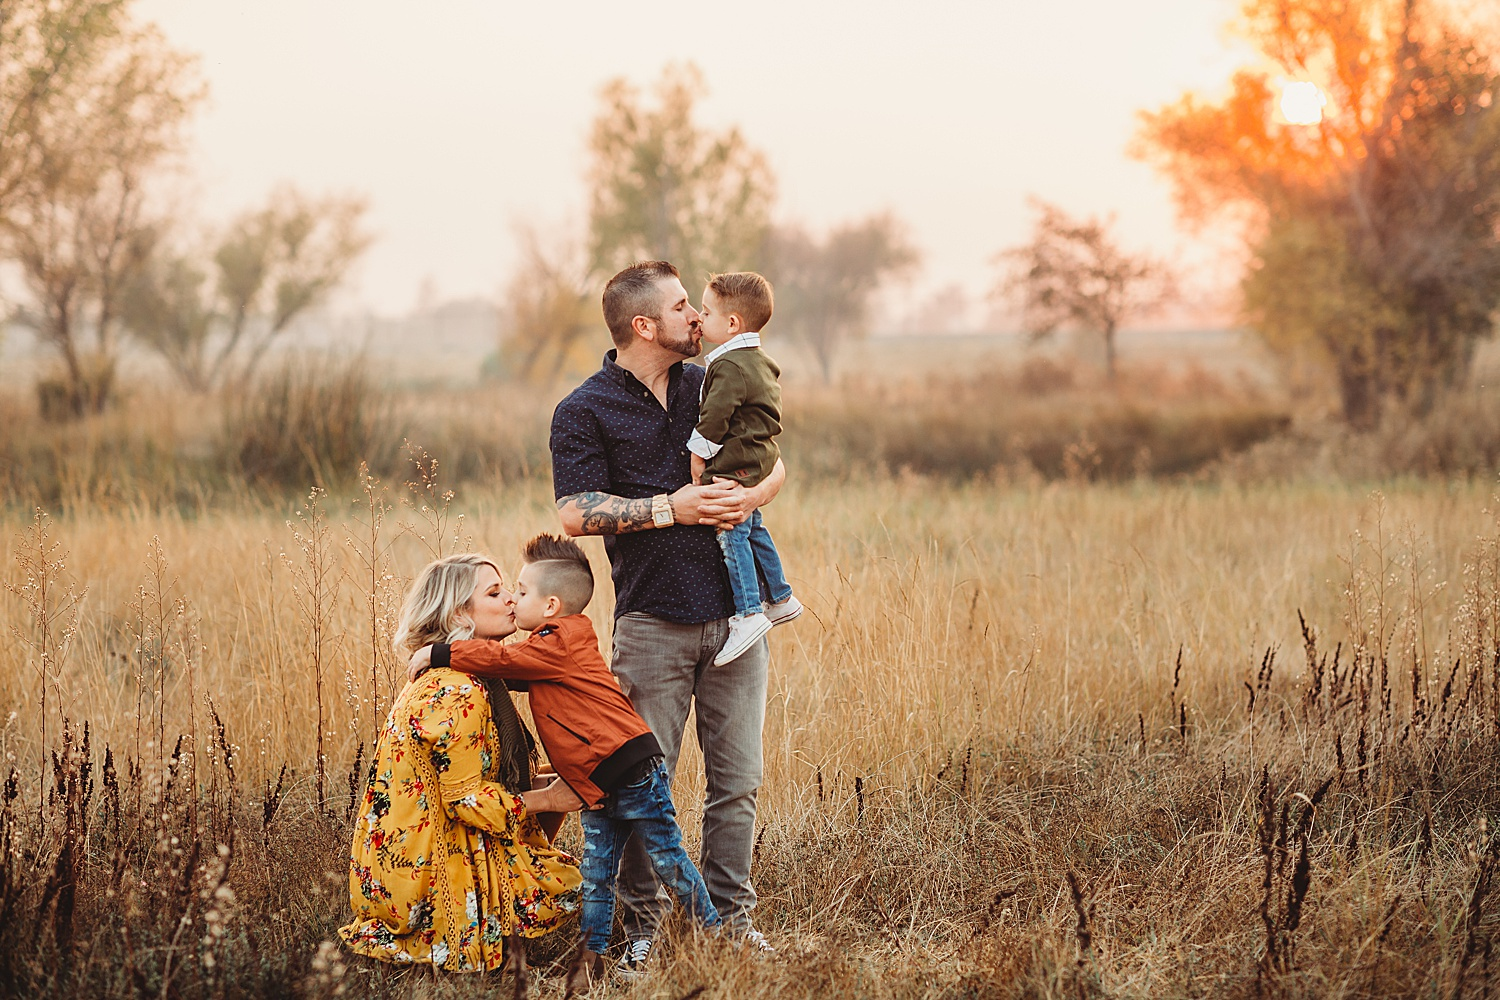 sunset lifestyle session - 60 minutesOutdoor locationUp to 5 peopleAt least 60 edited digital images in an online galleryFamily, maternity, couples$475